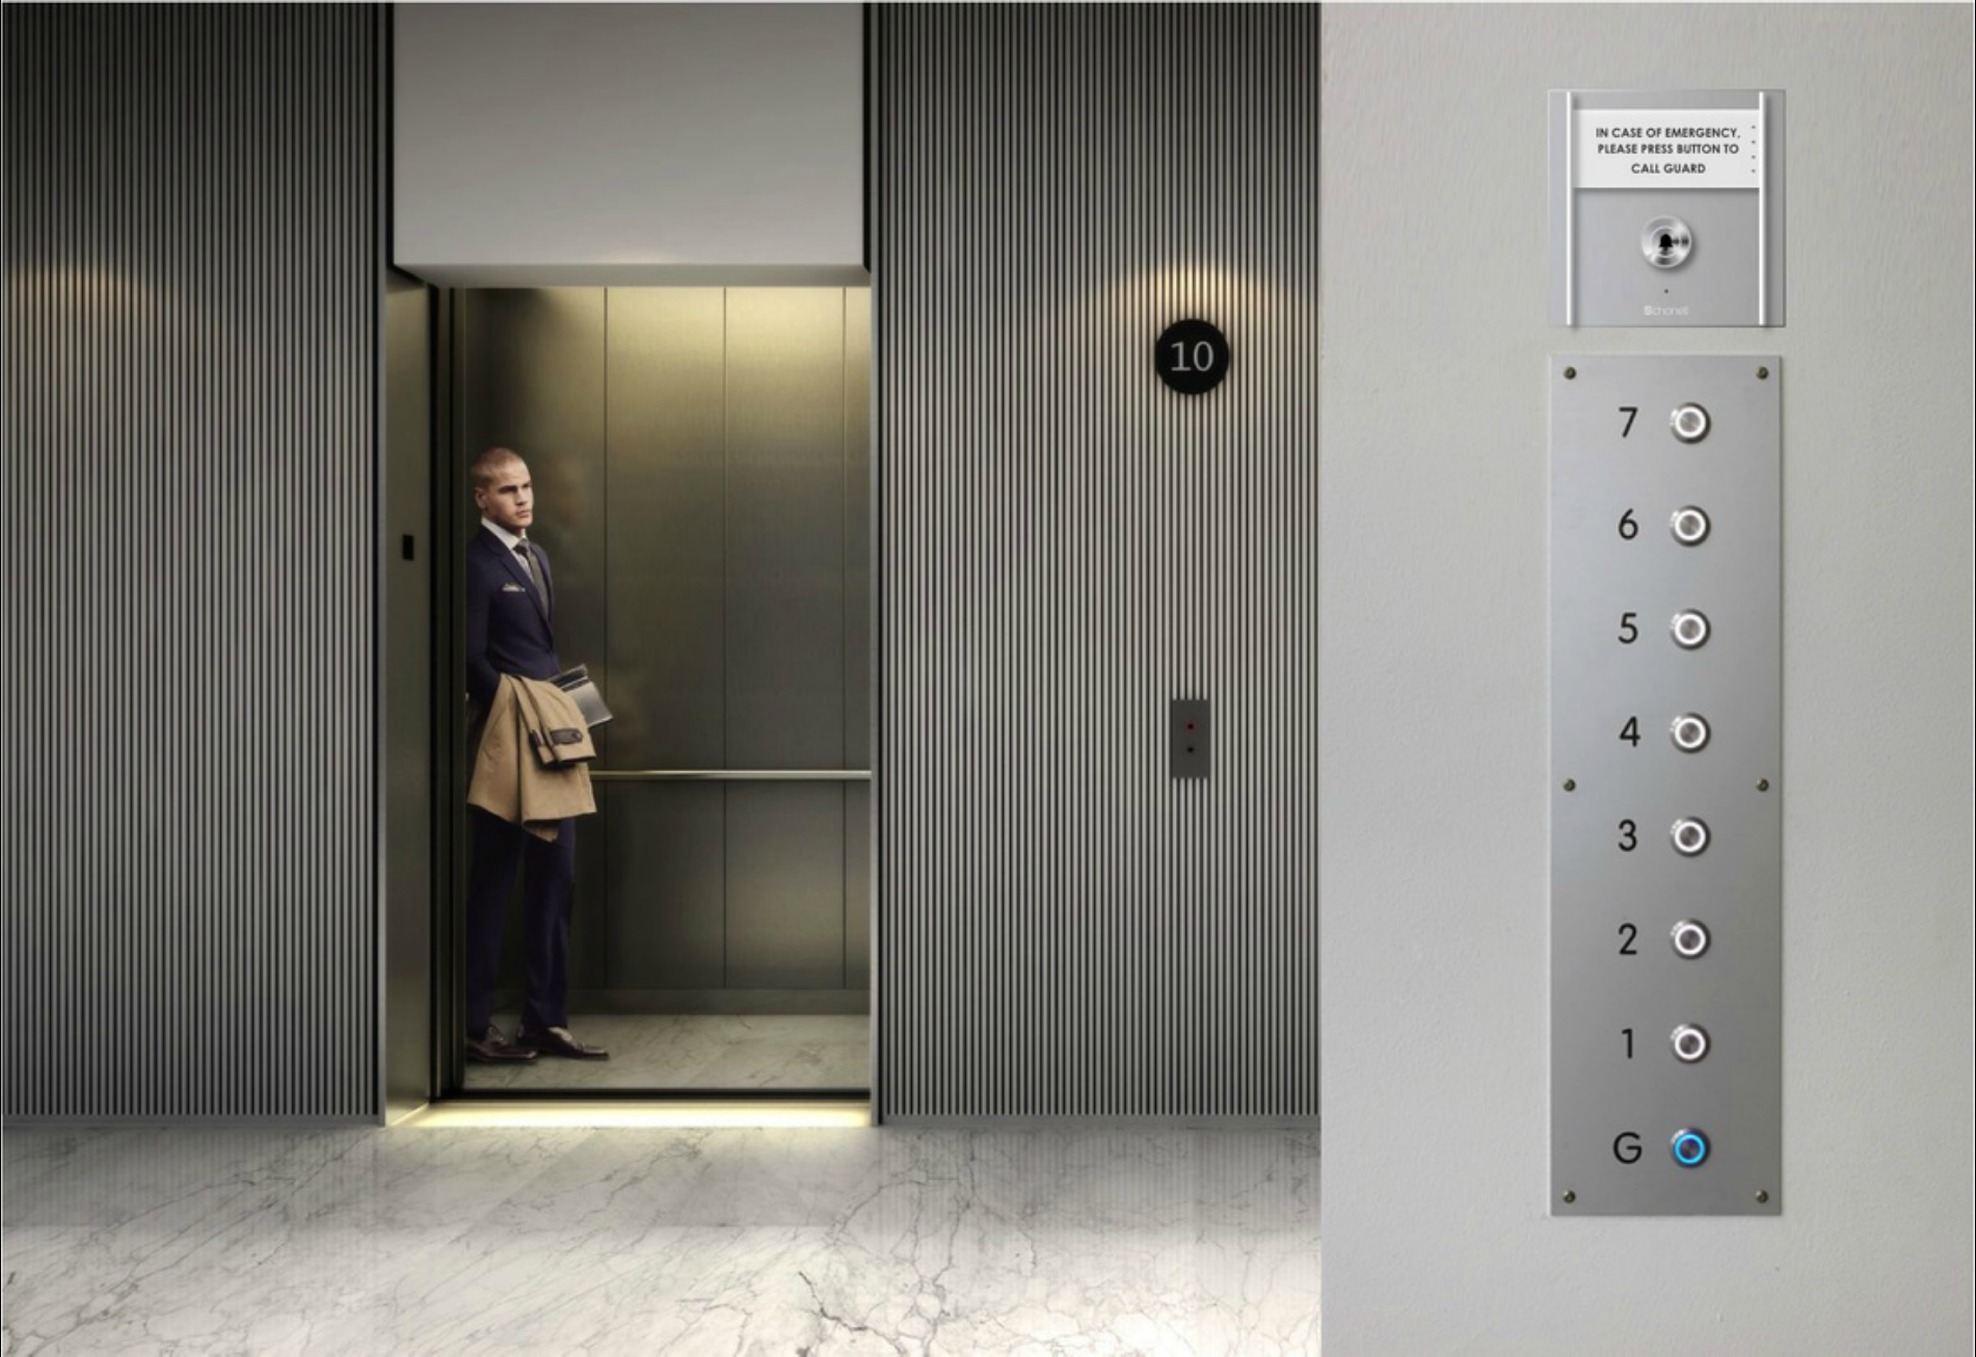 Elevator Intercom Alert | Lift Intercom | Emergency Intercom | Building Intercom | Audio Intercom